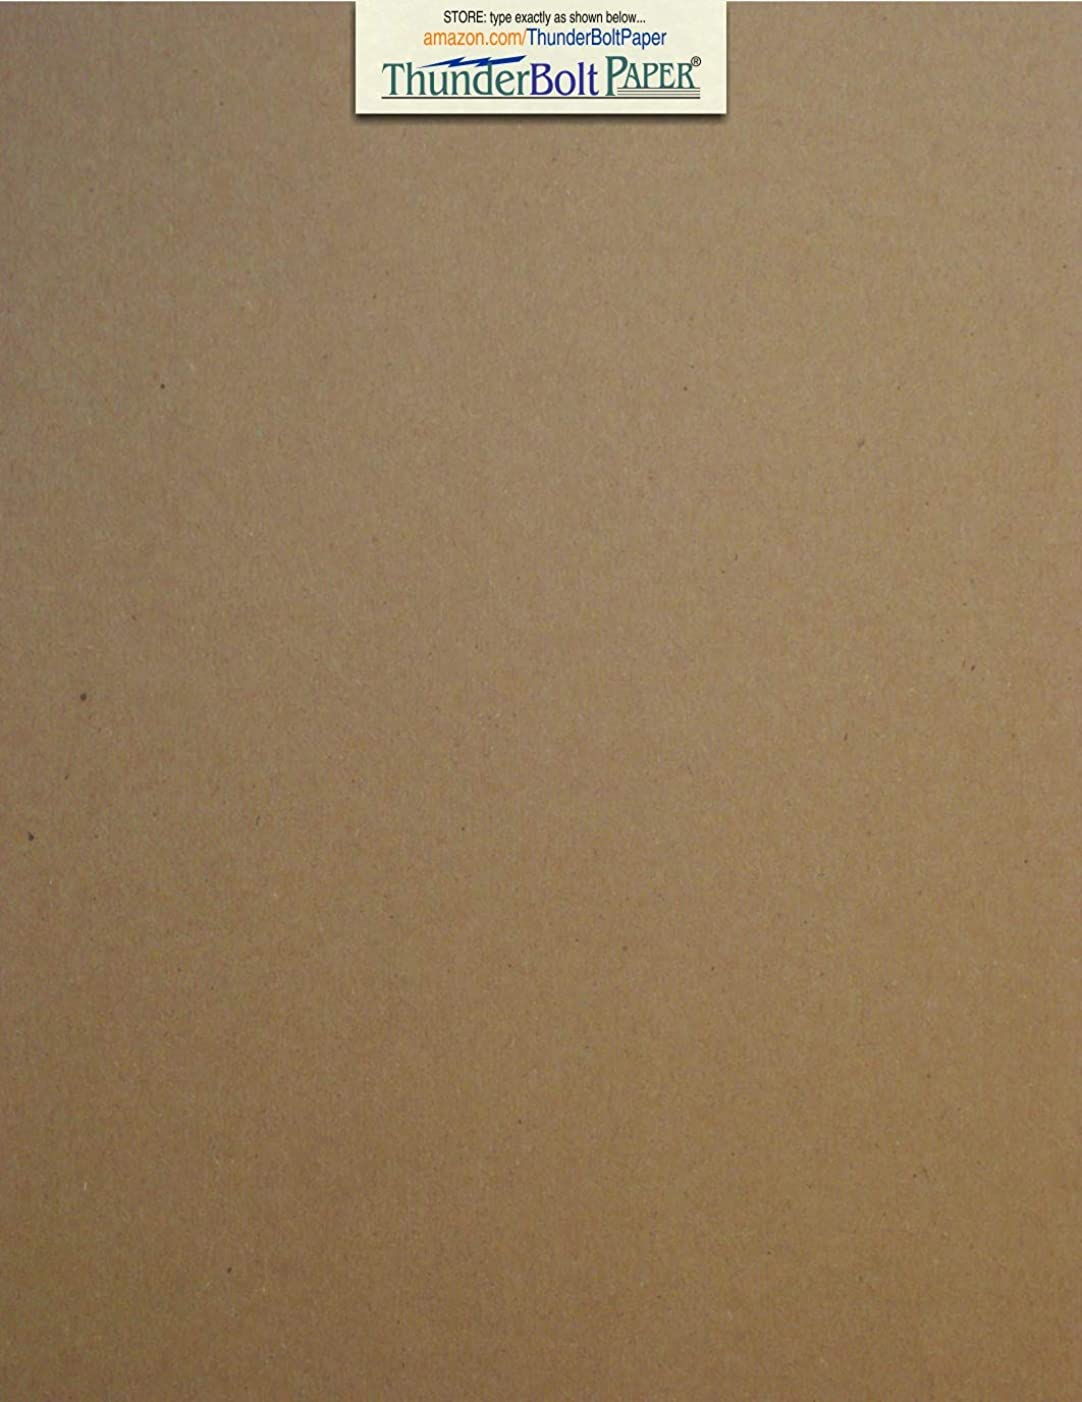 15 Sheets Chipboard 46pt (Point) 9 X 12 Inches Heavy Weight Sketch Pad Size .046 Caliper Thick Cardboard Craft|Packing Brown Kraft Paper Board